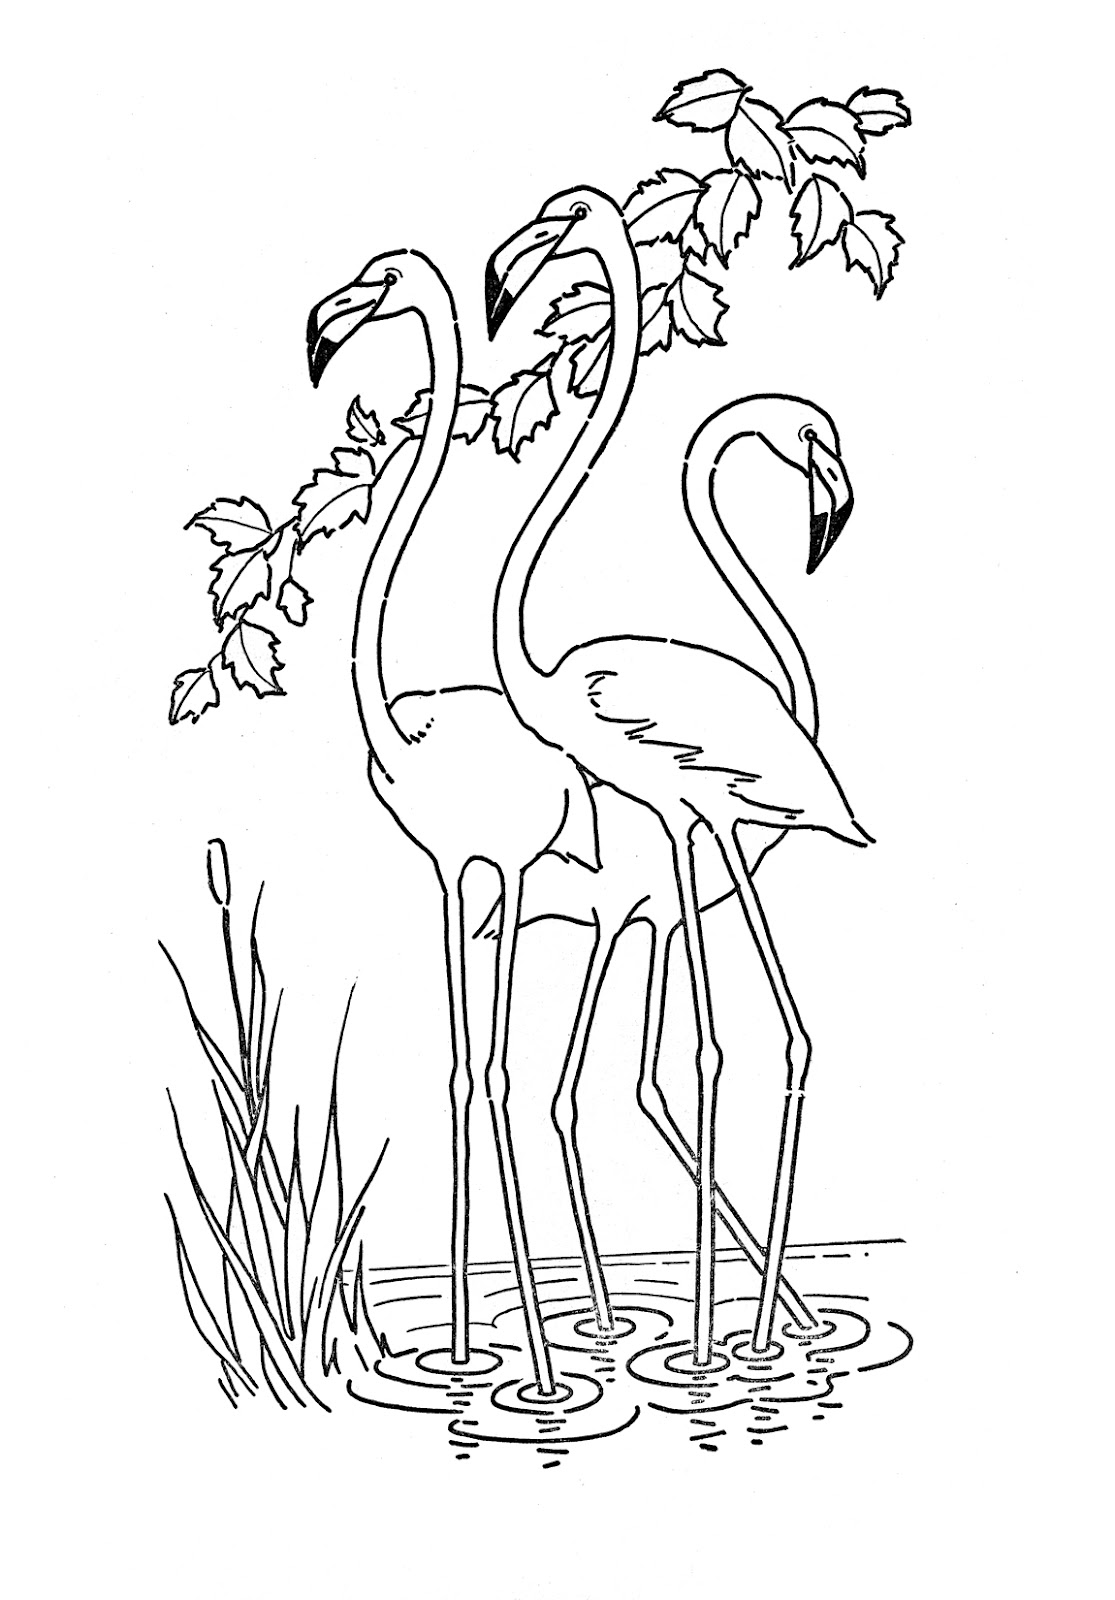 coloring clipart for kids back to school kids coloring page free clip art coloring clipart for kids